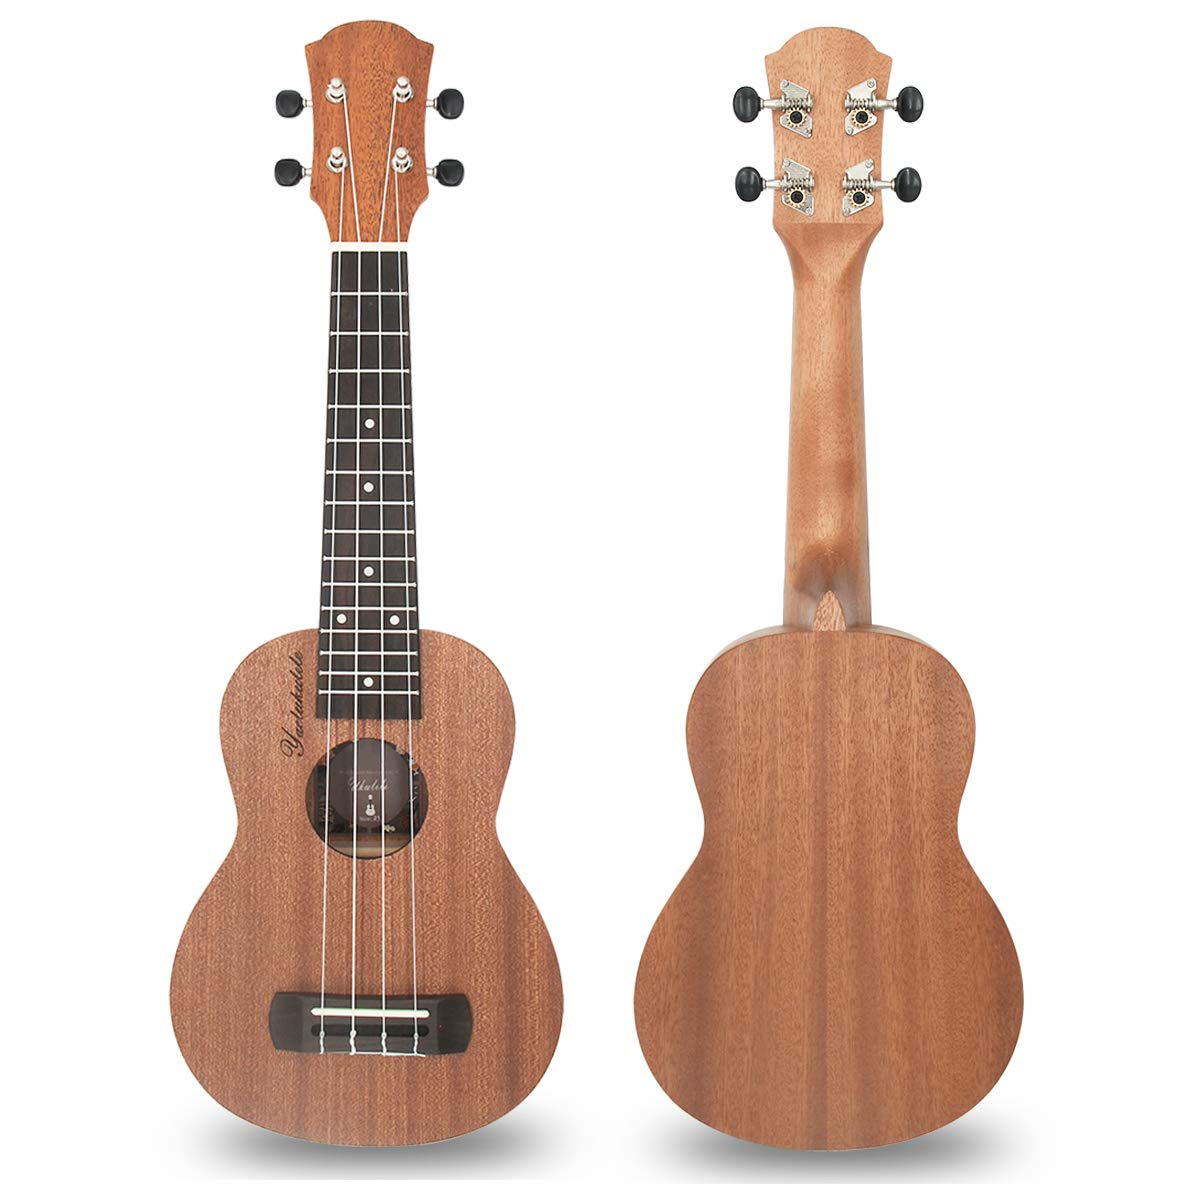 Professional 21 Inch Ukulele Bass Rosewood Child Ukelele Small Guitars For Kids Beginners by ACTUTECH